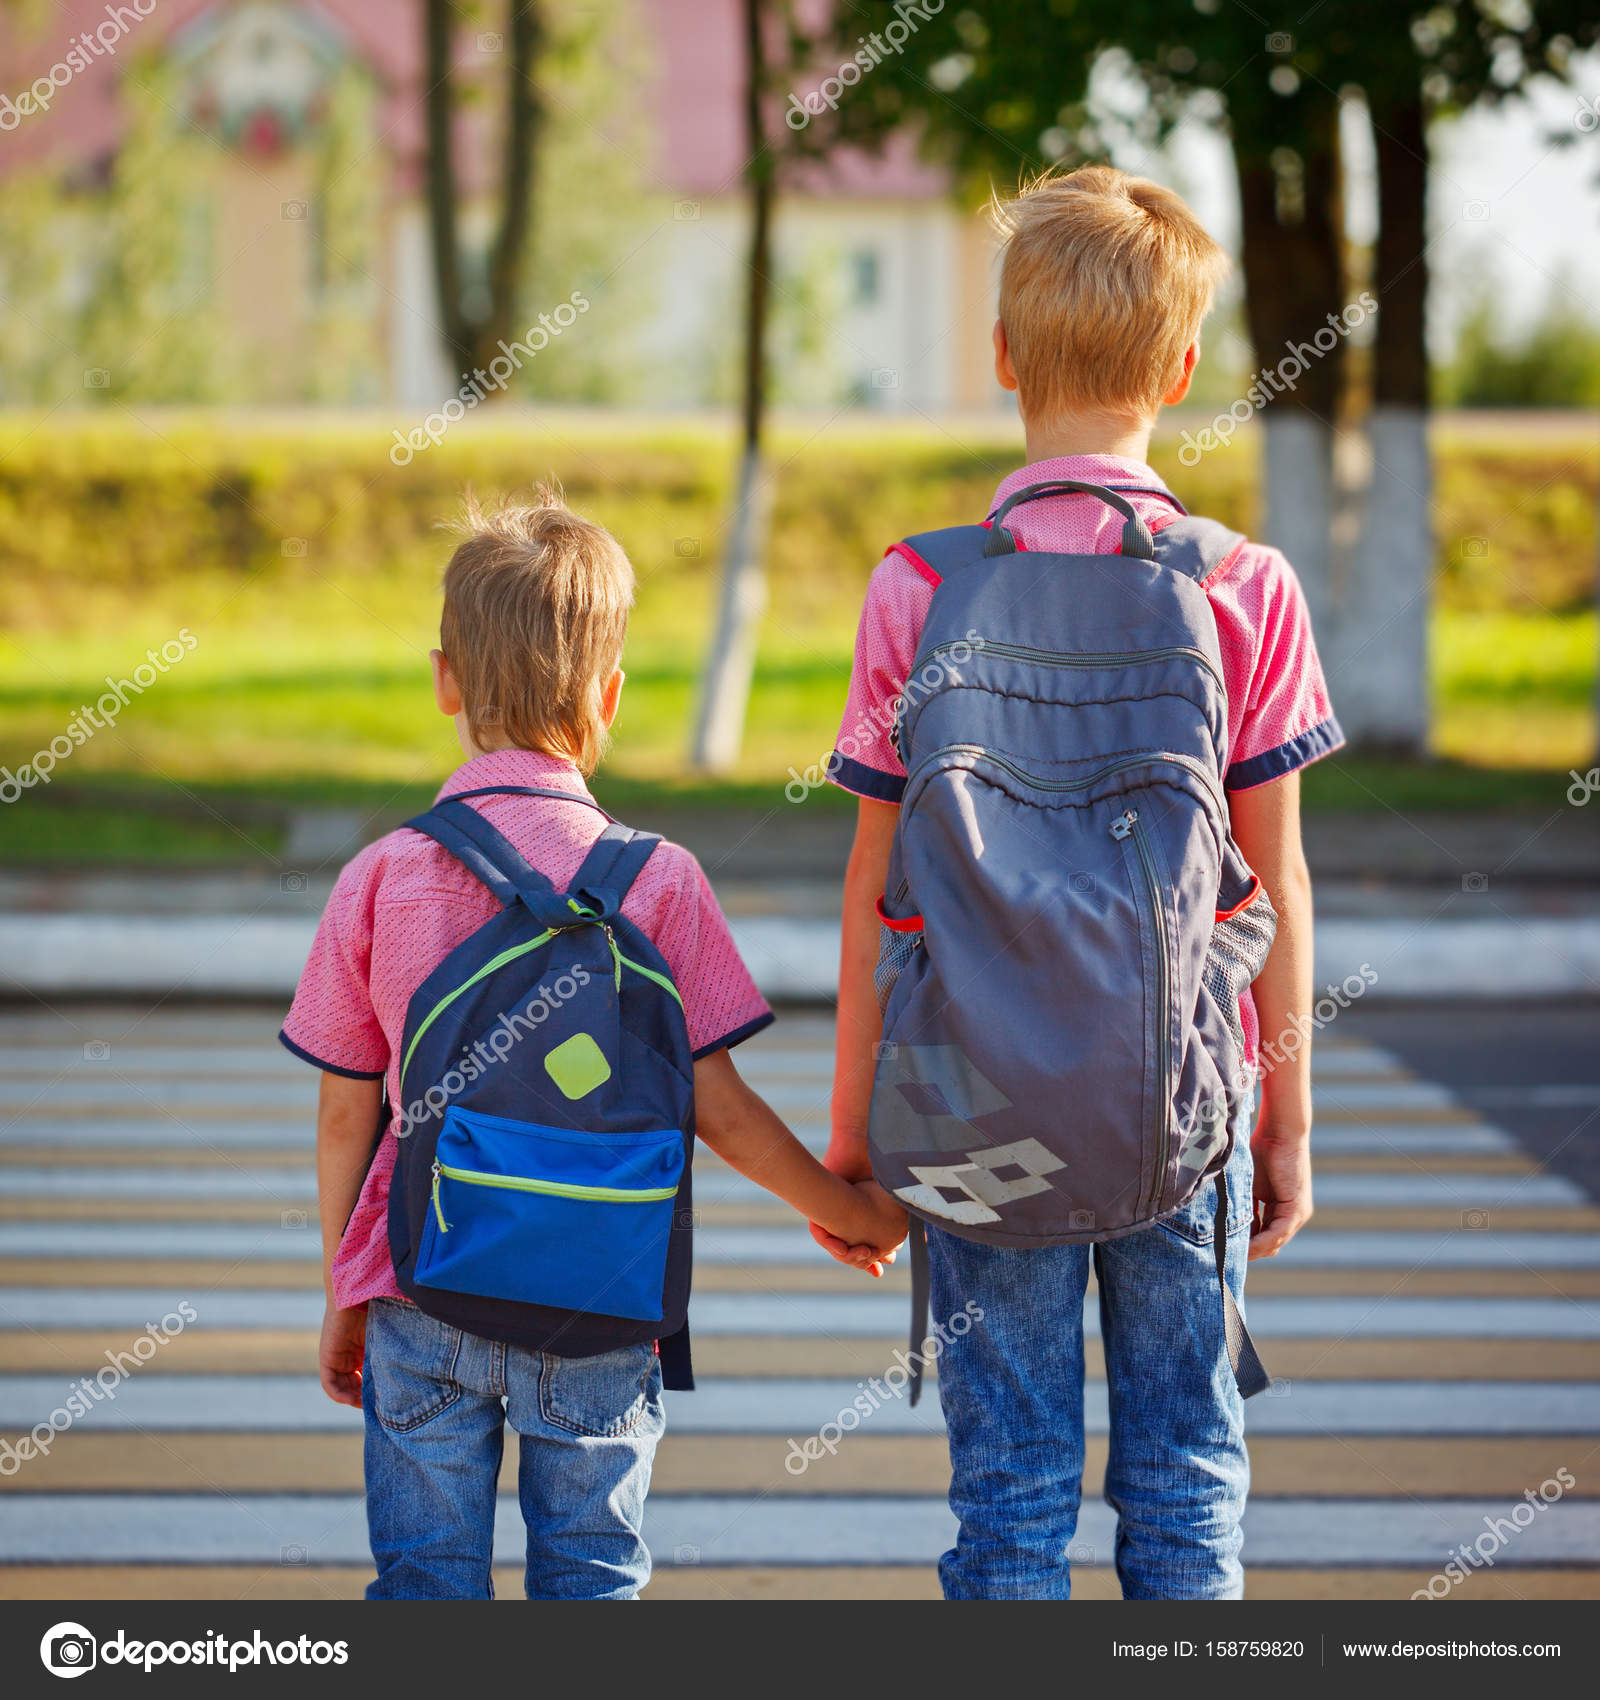 Two Kids With Backpacks Walking On The Road Holding School Time